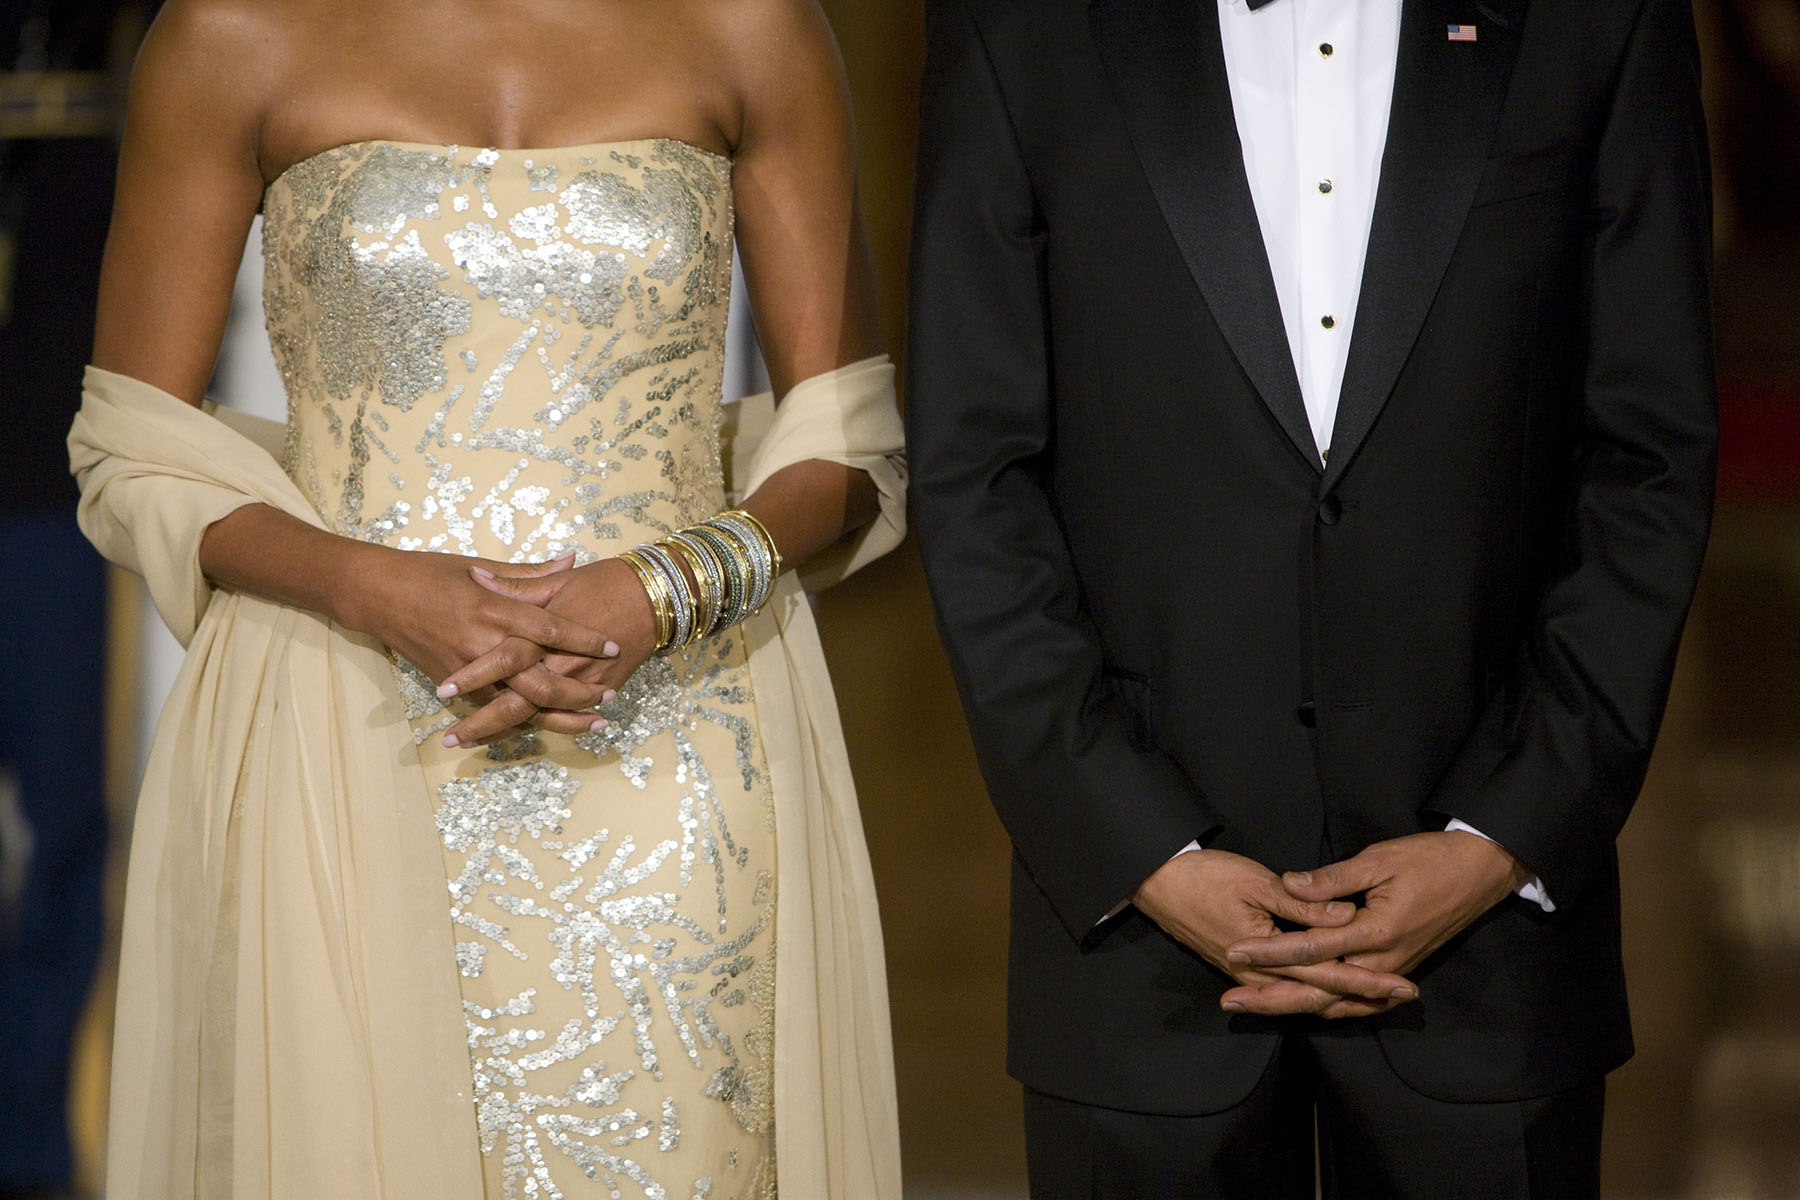 U.S. President Barack Obama and first lady Michelle Obama await the arrival of India's Prime Minister Manmohan Singh and his wife Gursharan Kaur for a state dinner on the North Portico of the White House.